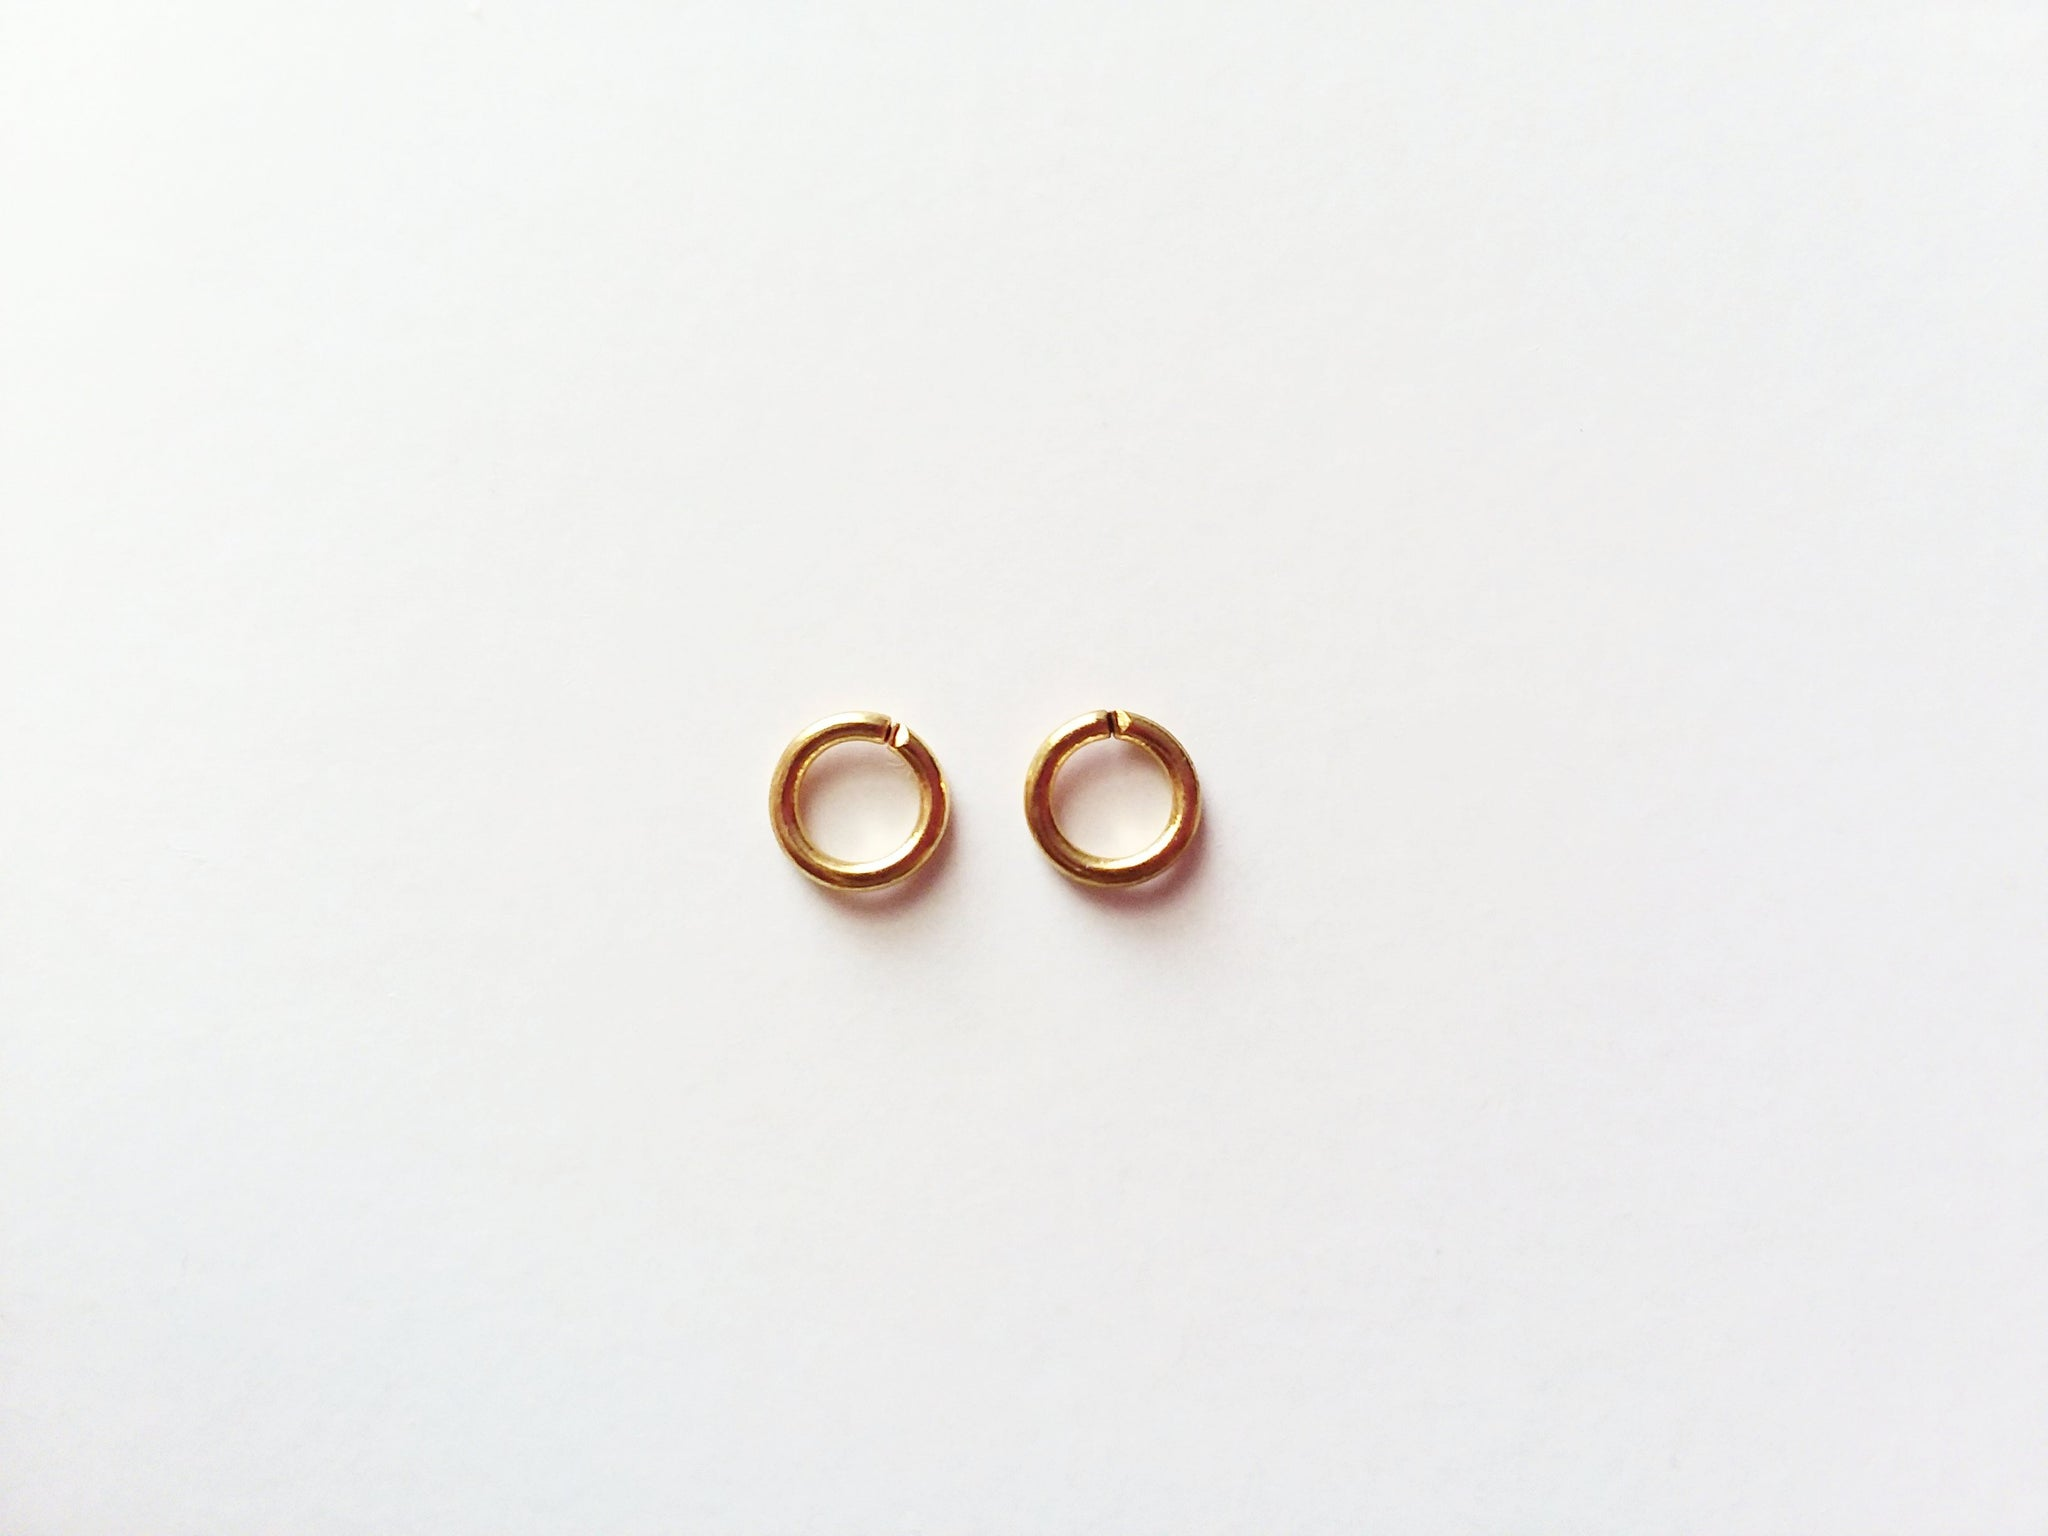 100 Gold Plated Jump Rings 6mm, 20 gauge